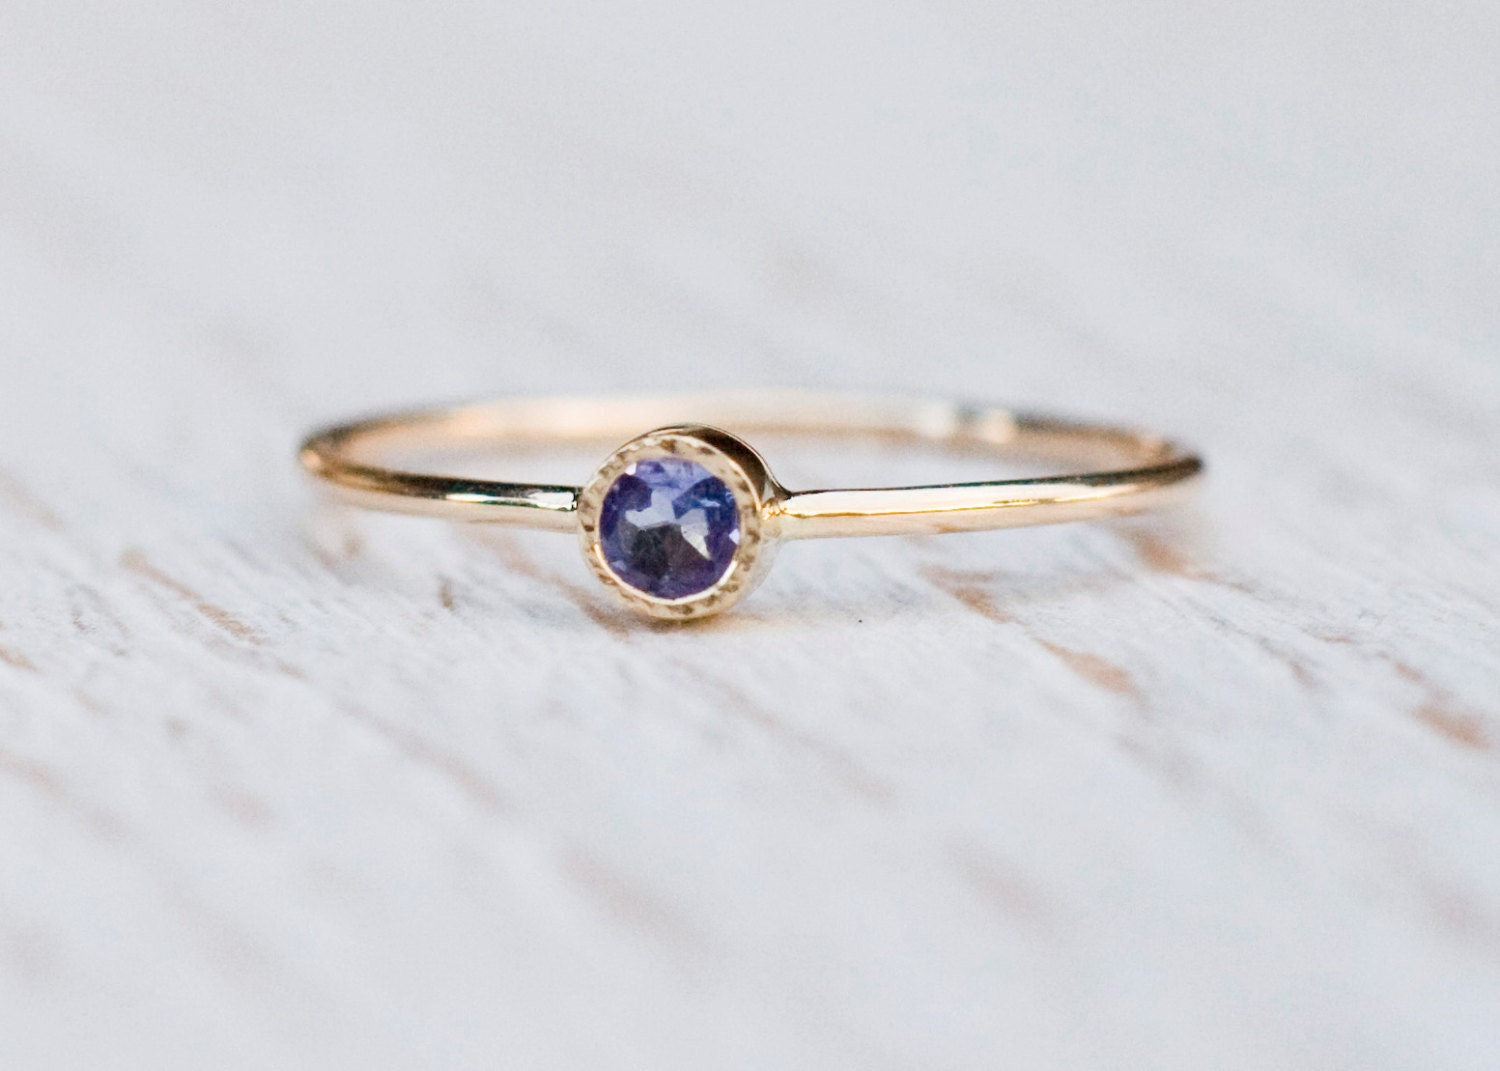 di birthstone si d tz december ring carat product with wedding wg diamond verity rings silver round r sterling tanzanite